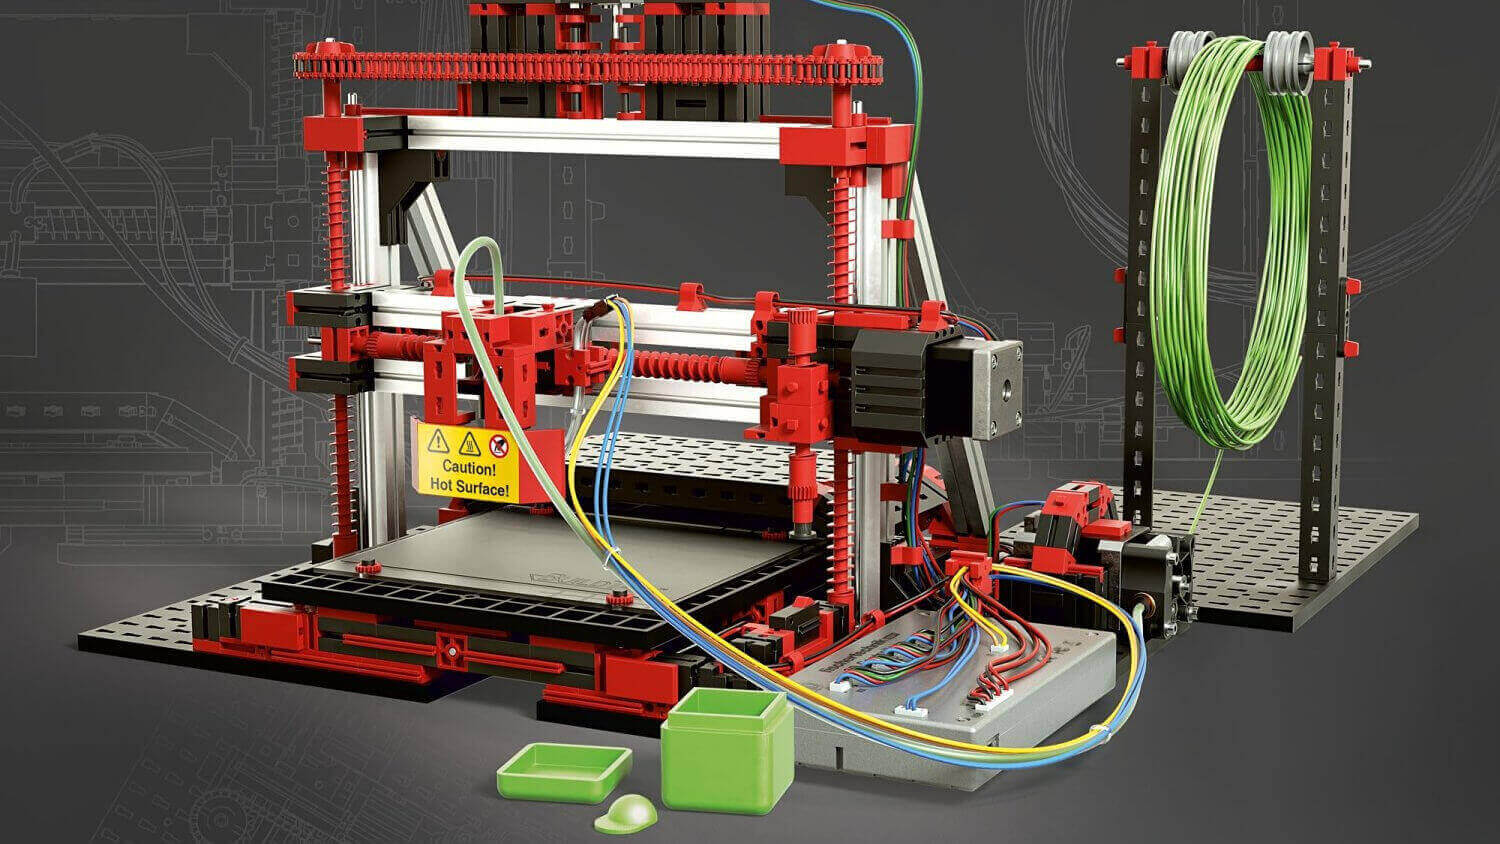 3D Printer Kit Review: Fischertechnik 536624 | All3DP